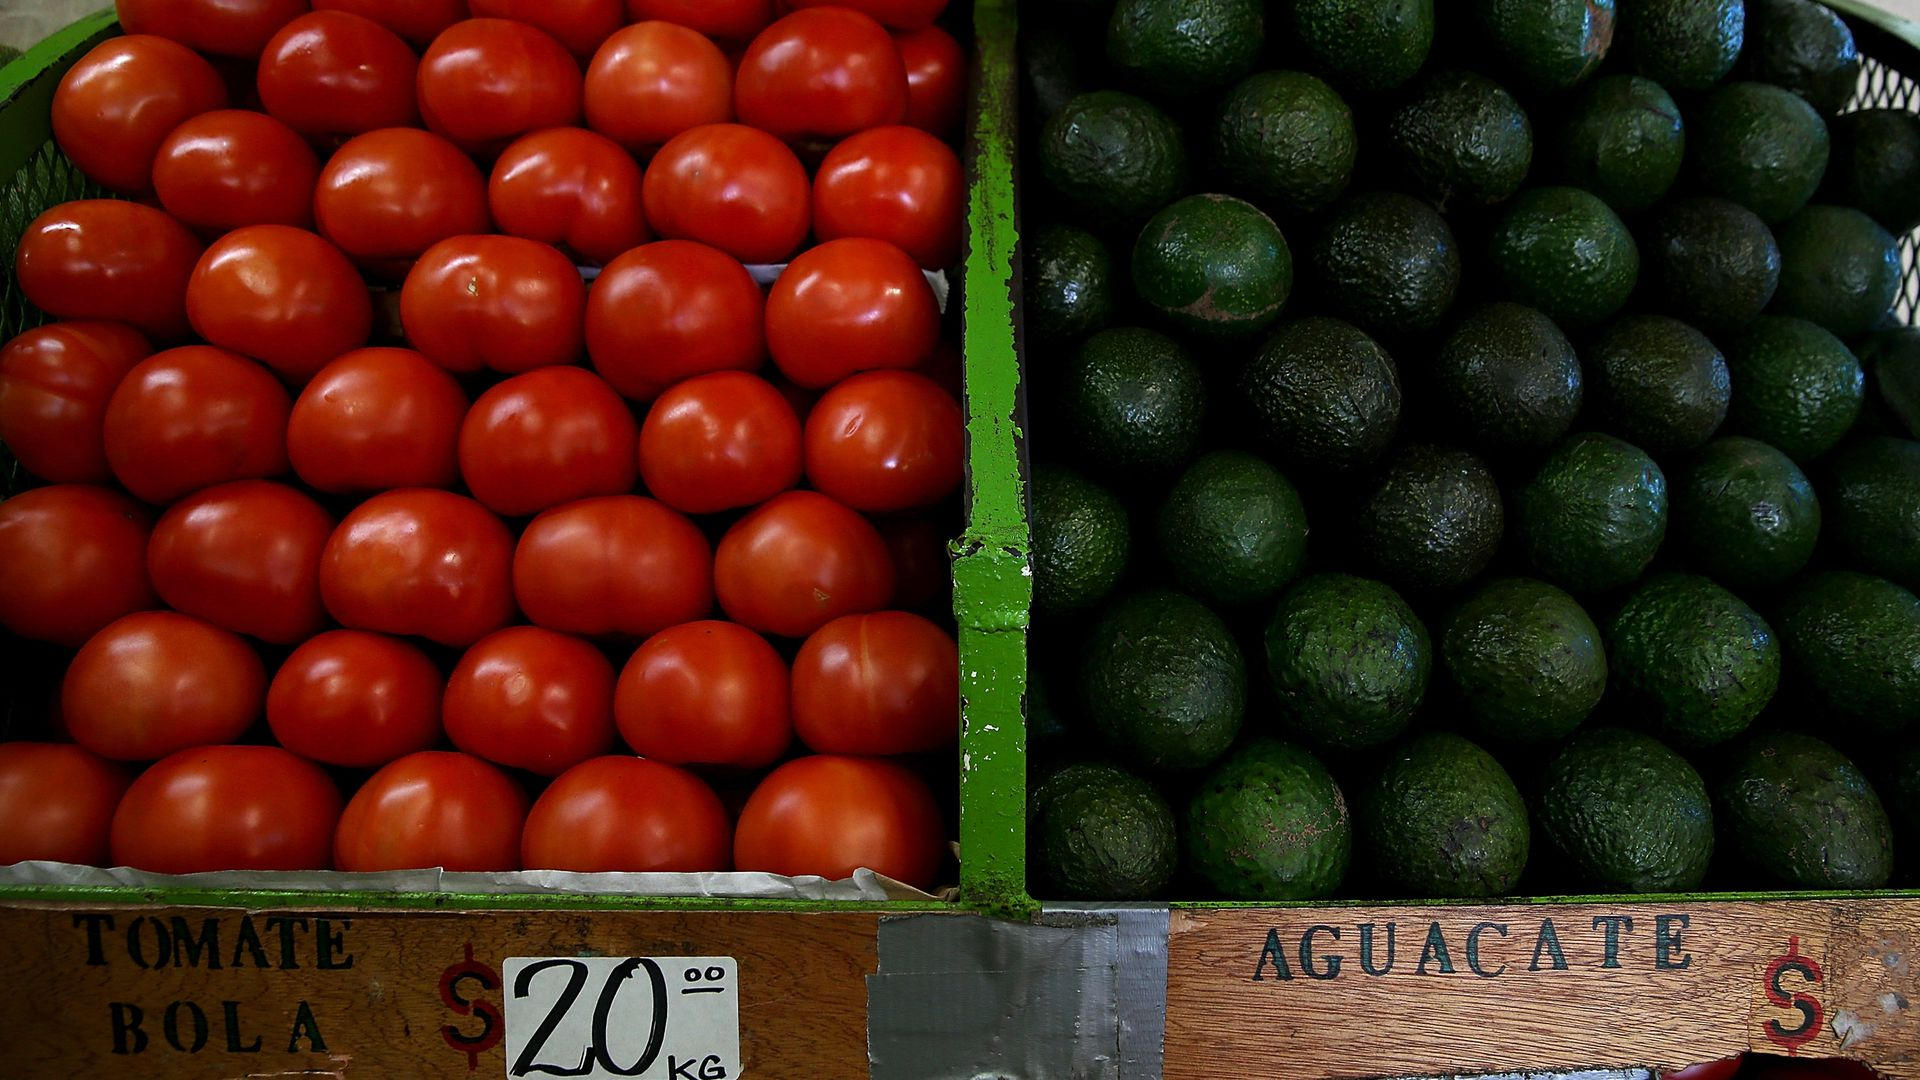 Tomatoes and avocados from mexico for sale.